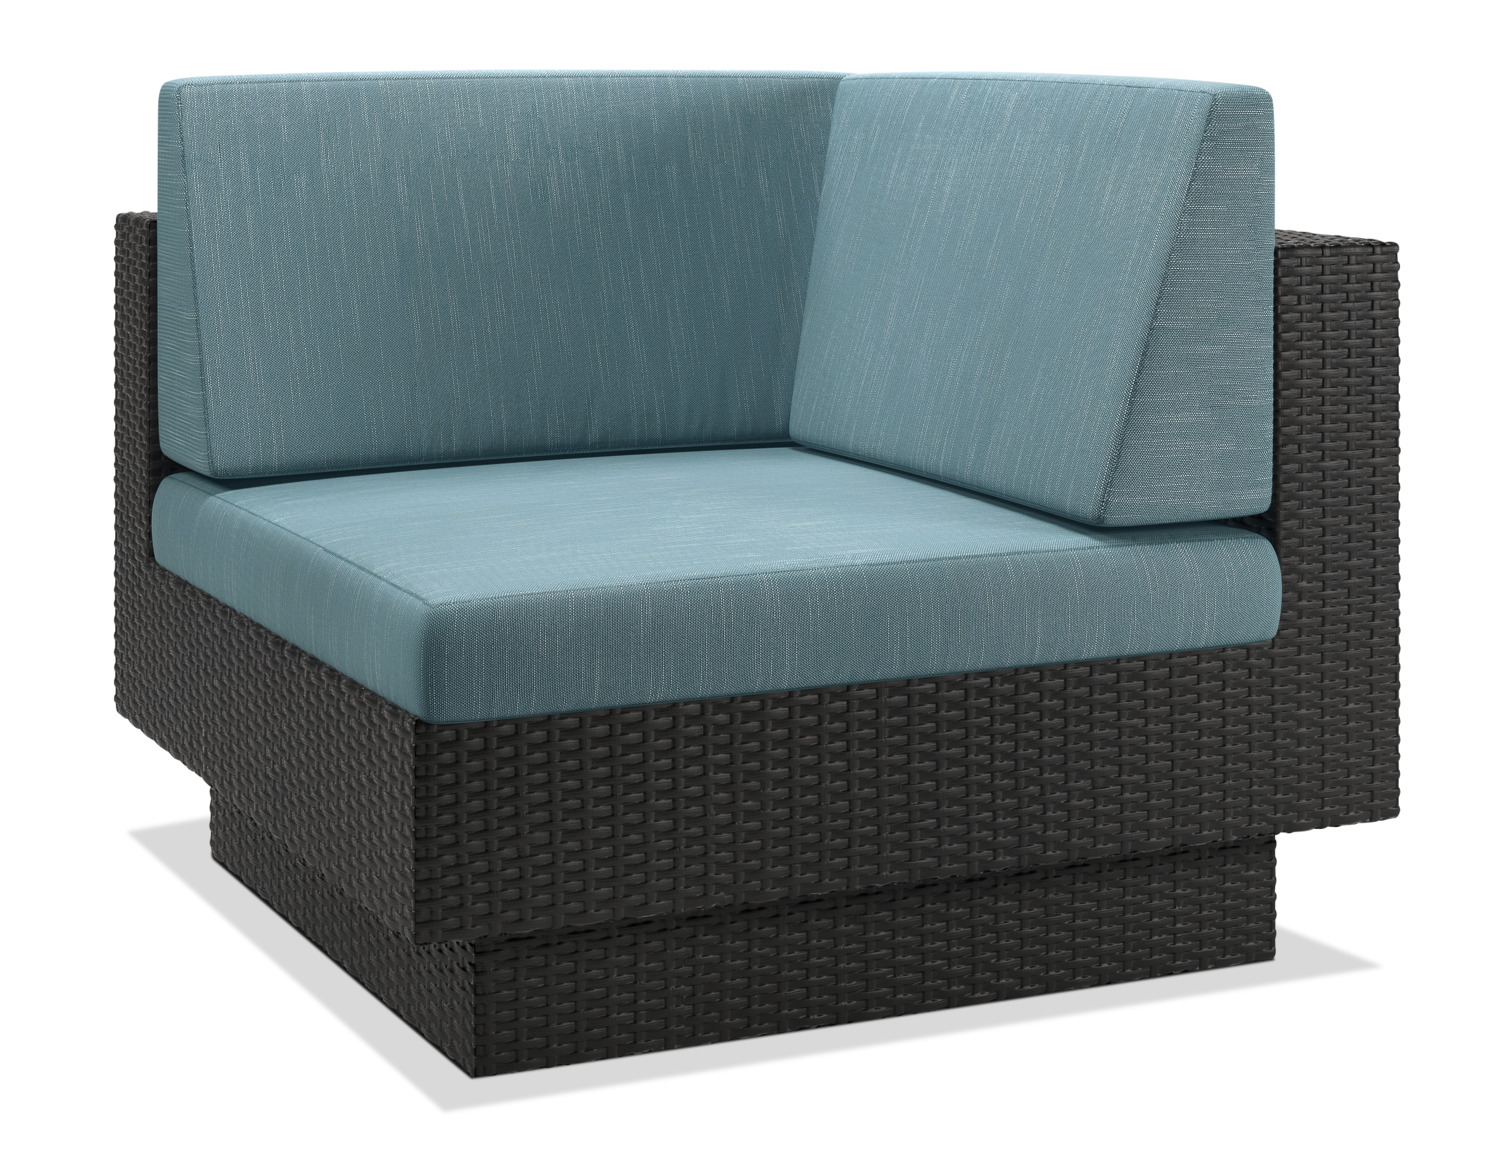 Parkview Patio Corner Chair Blue The Brick